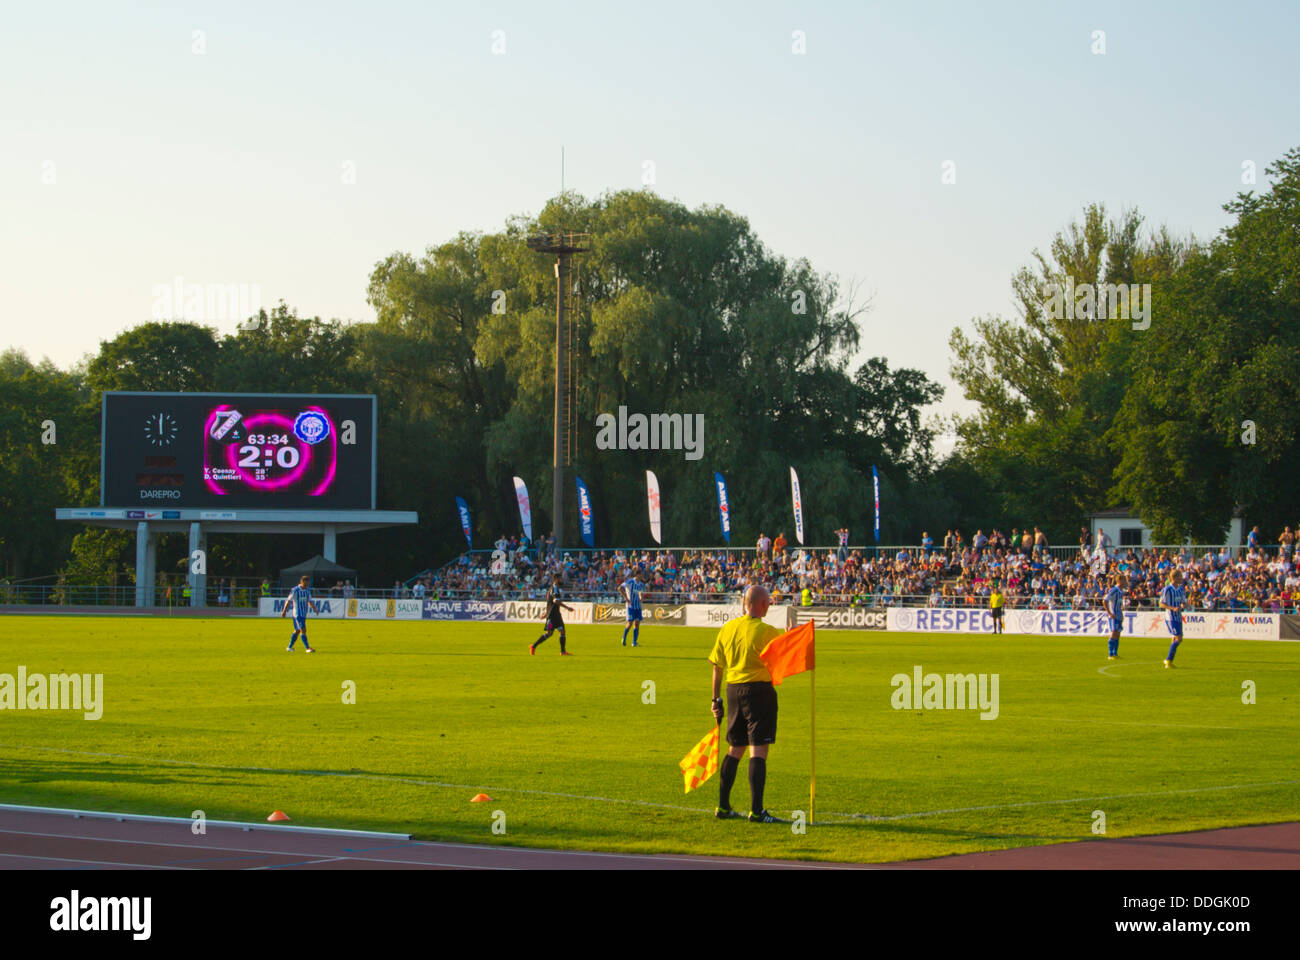 Kadriorg stadium during European league qualification match with local team Nommi Kalju vs HJK Helsinki Tallinn - Stock Image